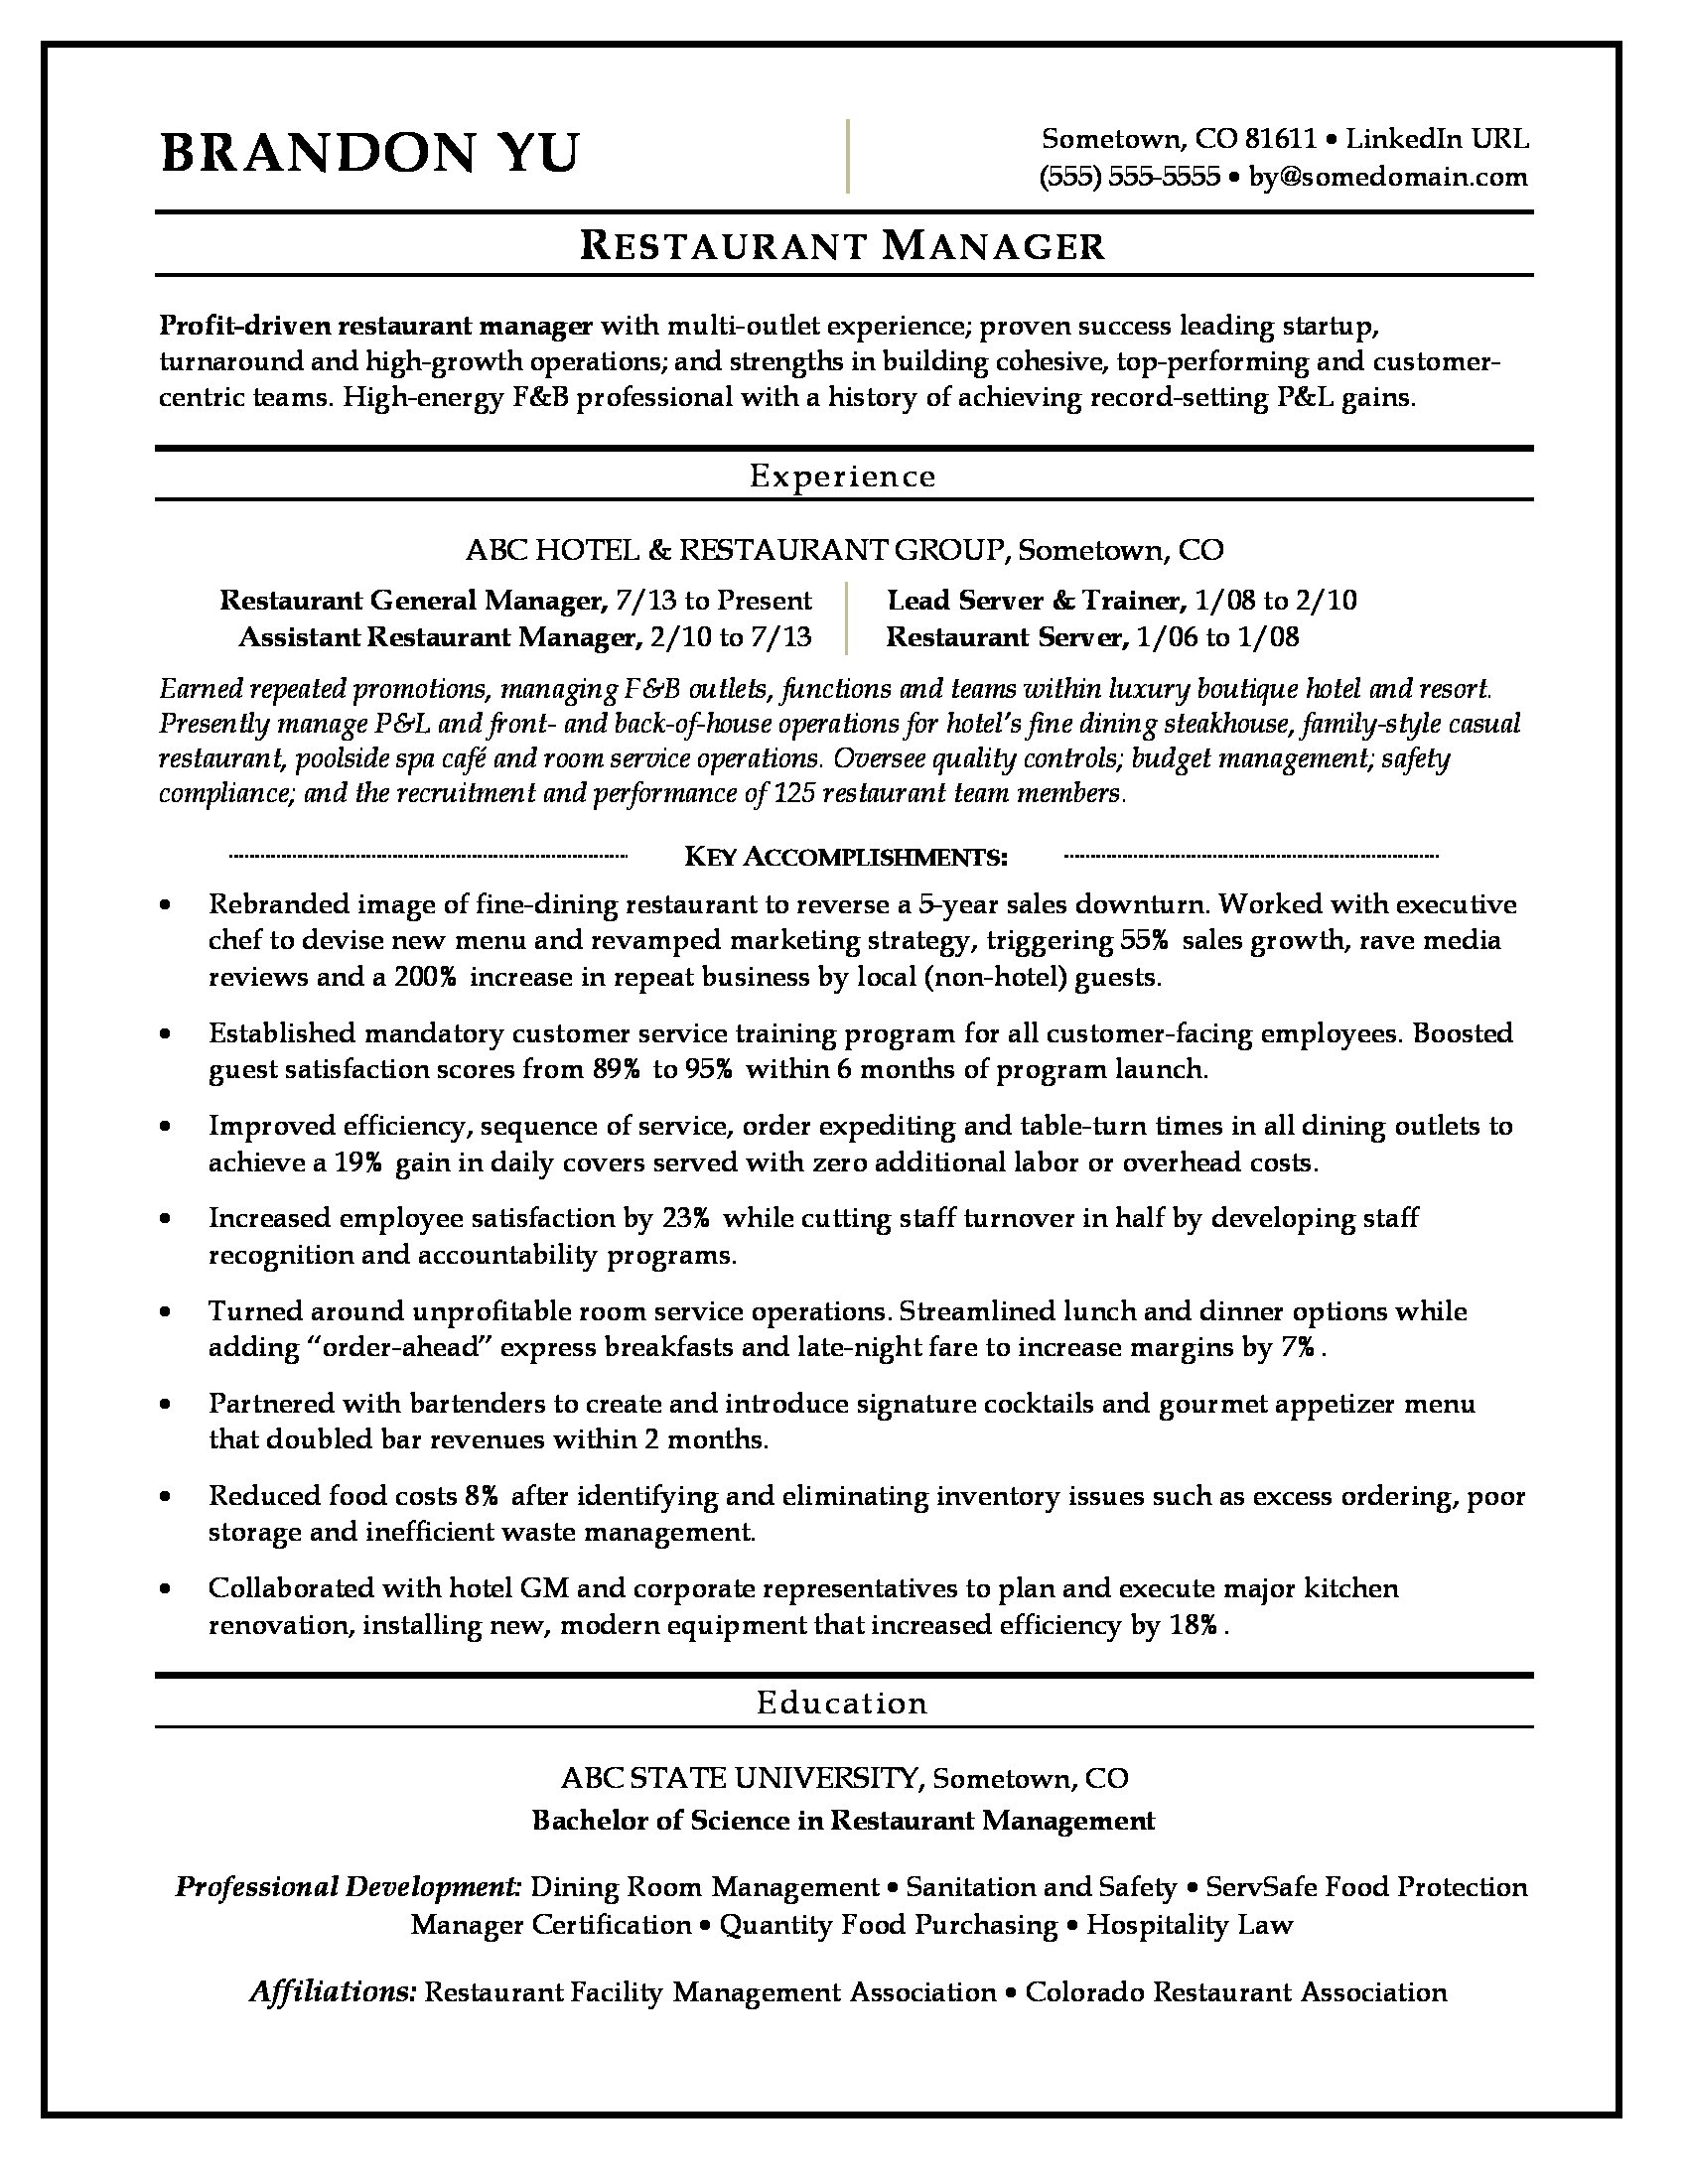 Sample Resume For A Restaurant Manager  Food Service Resume